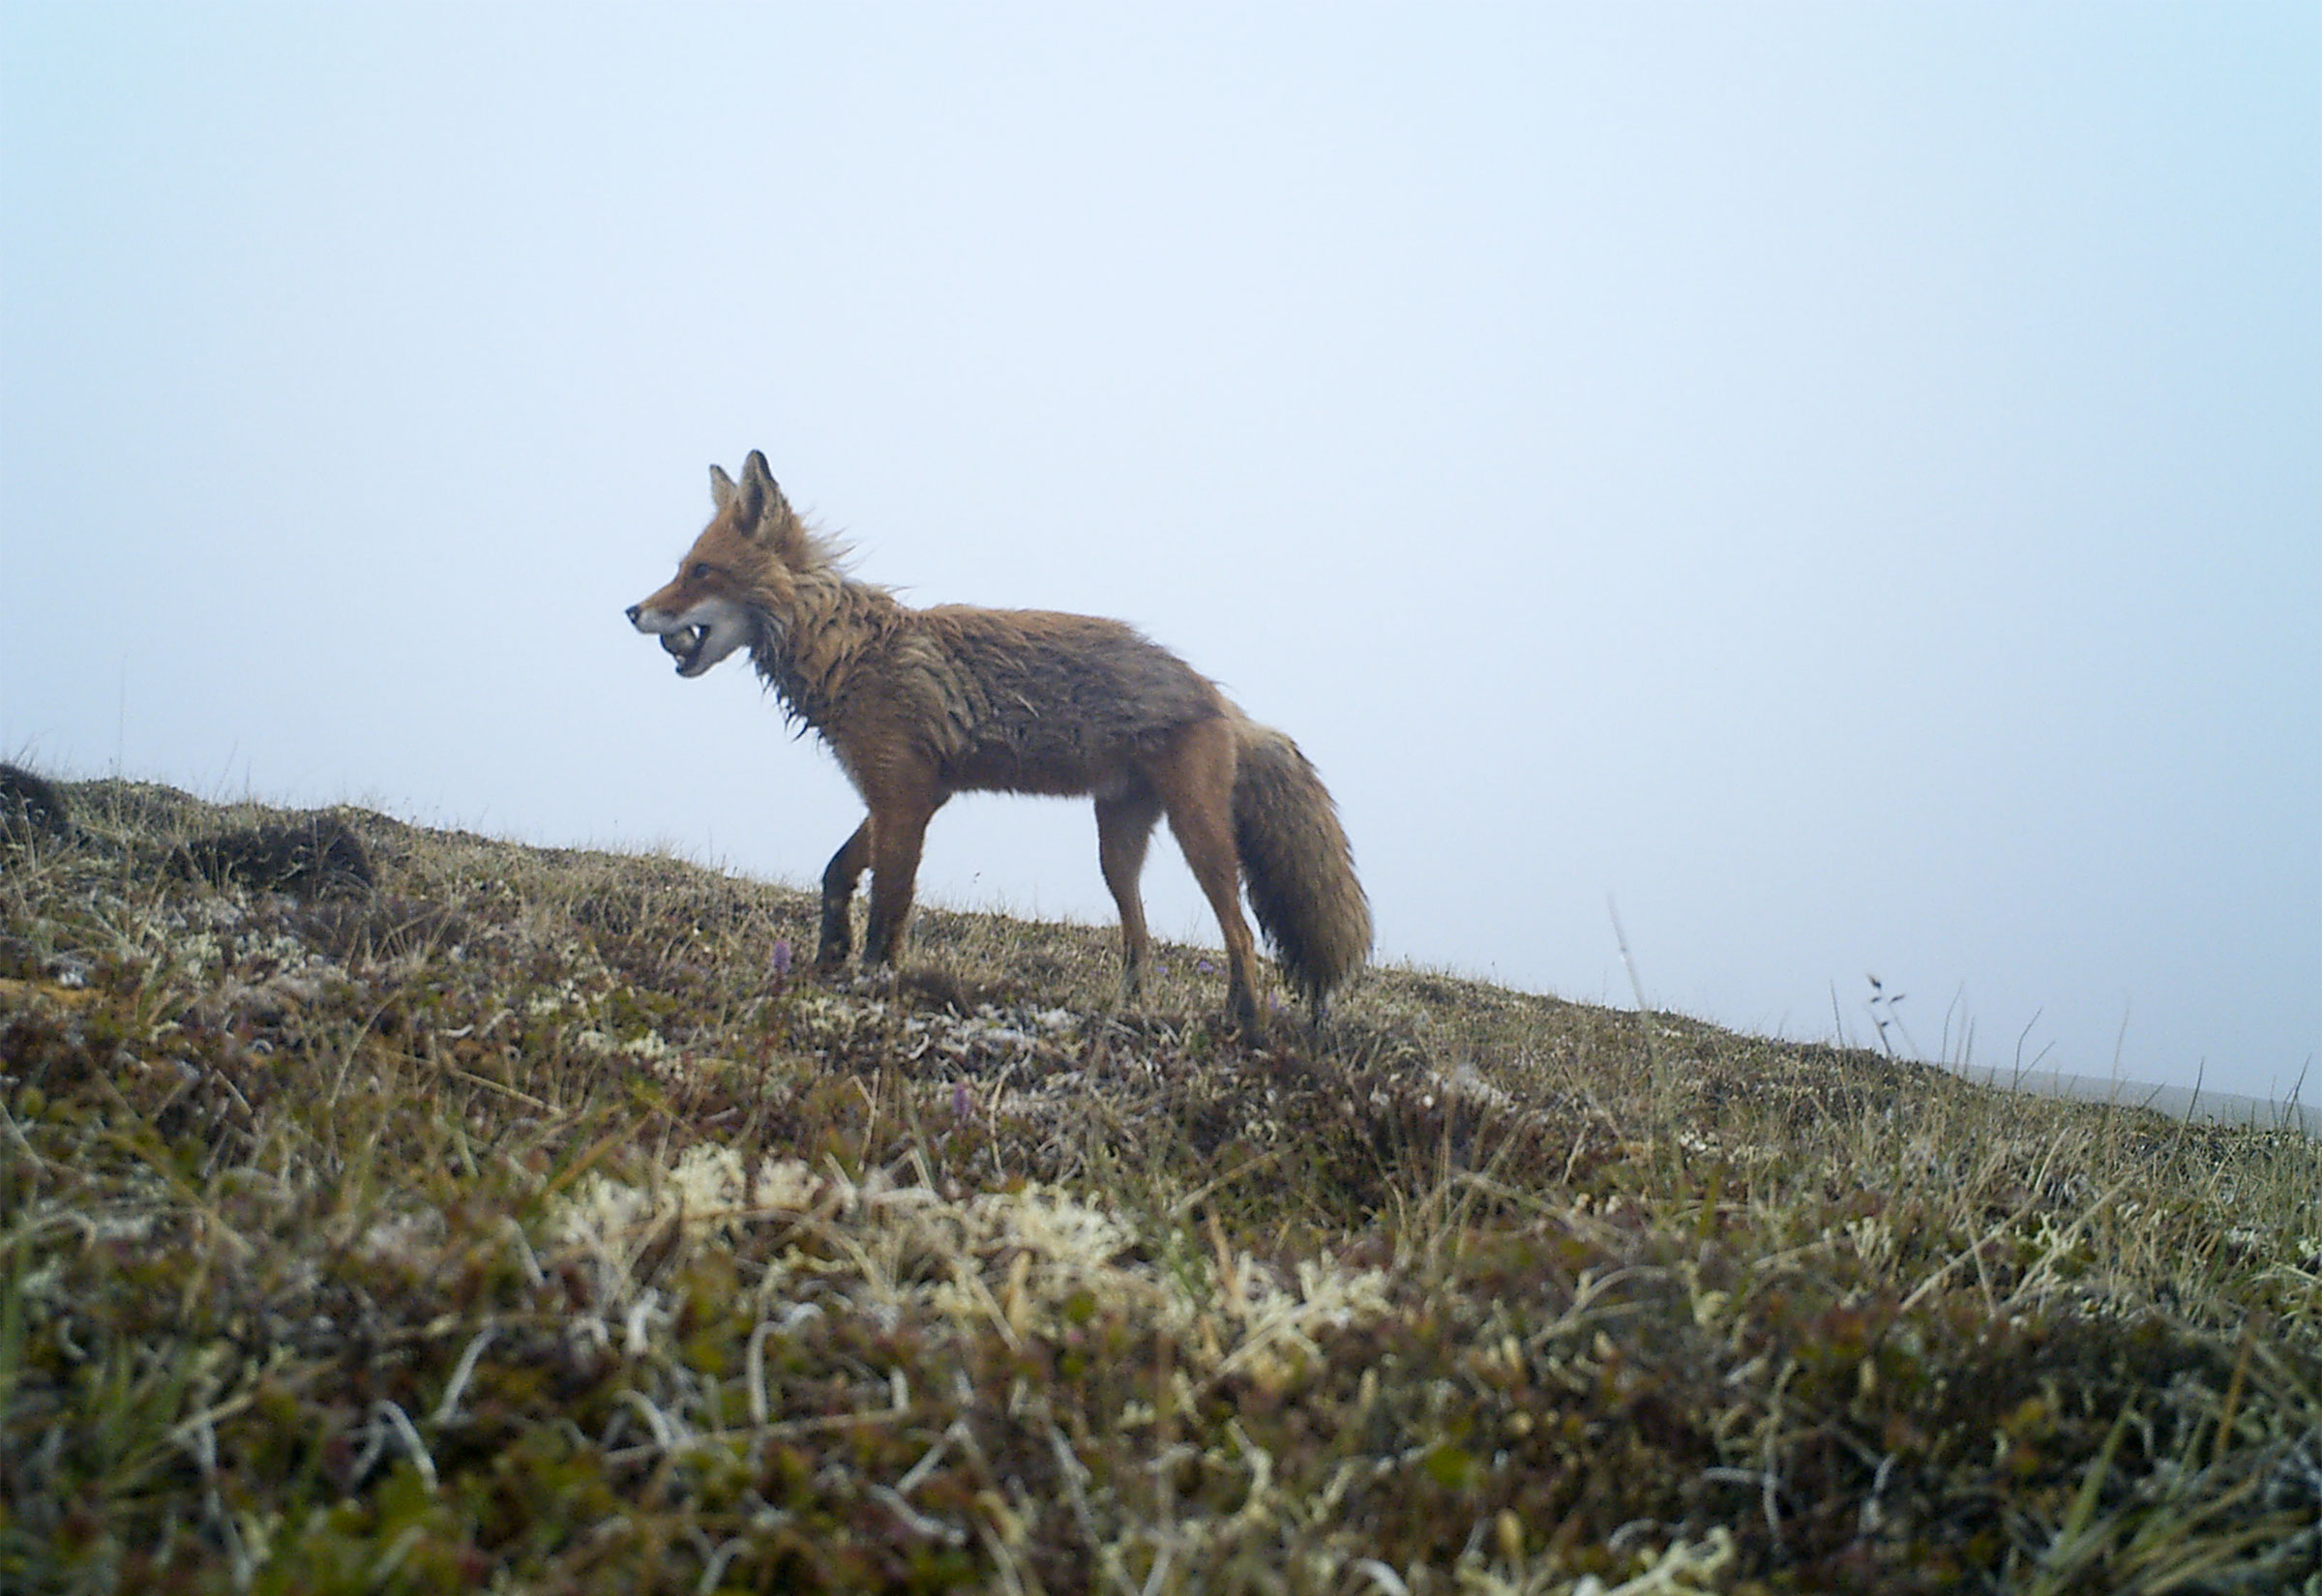 A Red Fox carries off an egg of a Pacific Golden-Plover in its mouth. Pavel Tomkovich/BirdsRussia